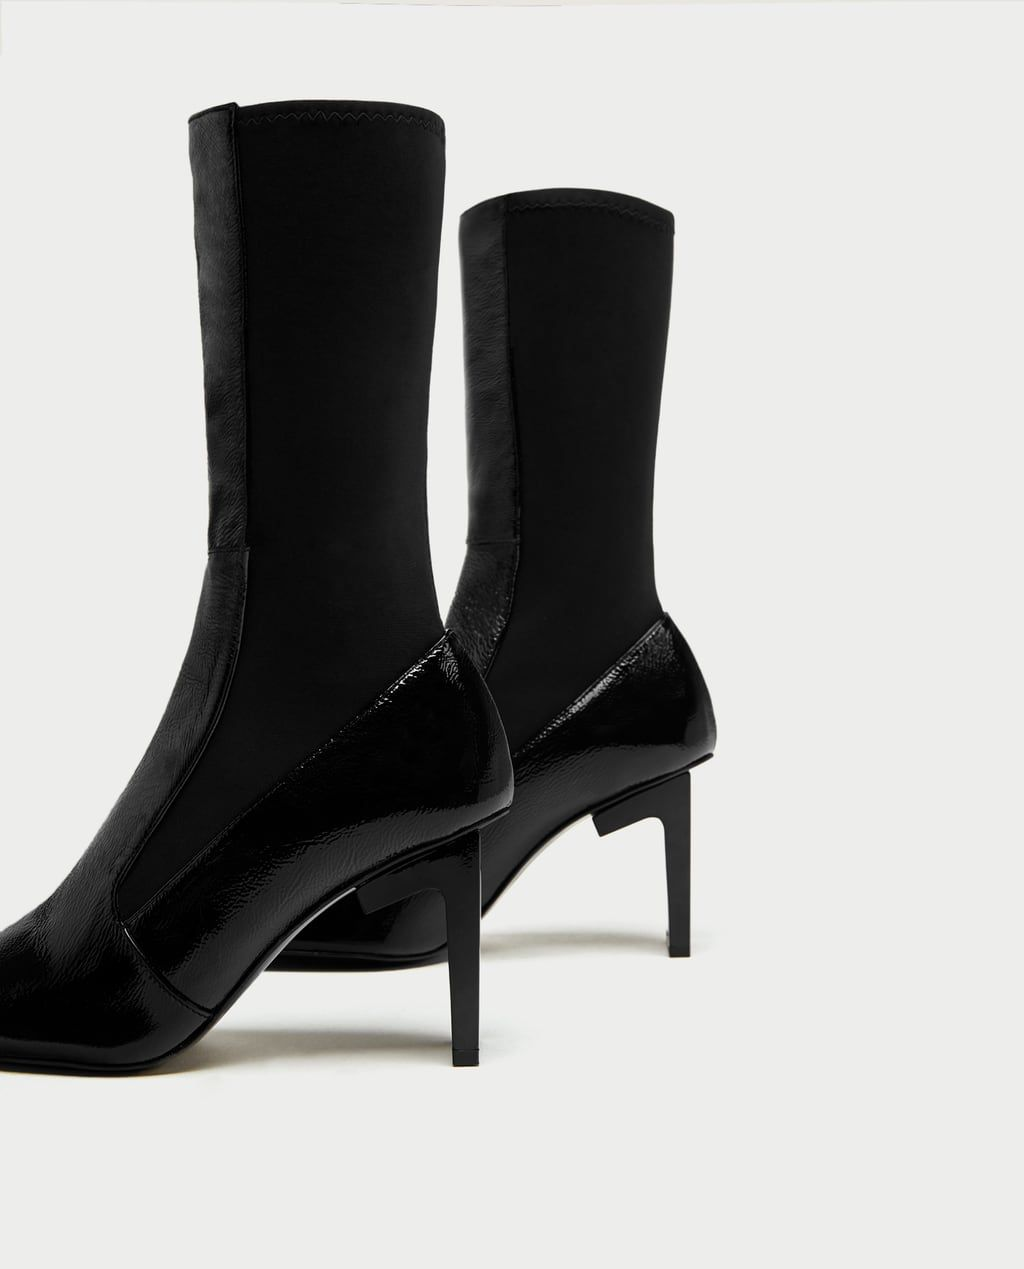 547d30b589e SQUARE TOED HIGH HEEL LEATHER ANKLE BOOTS-View all-SHOES-WOMAN-SALE ...